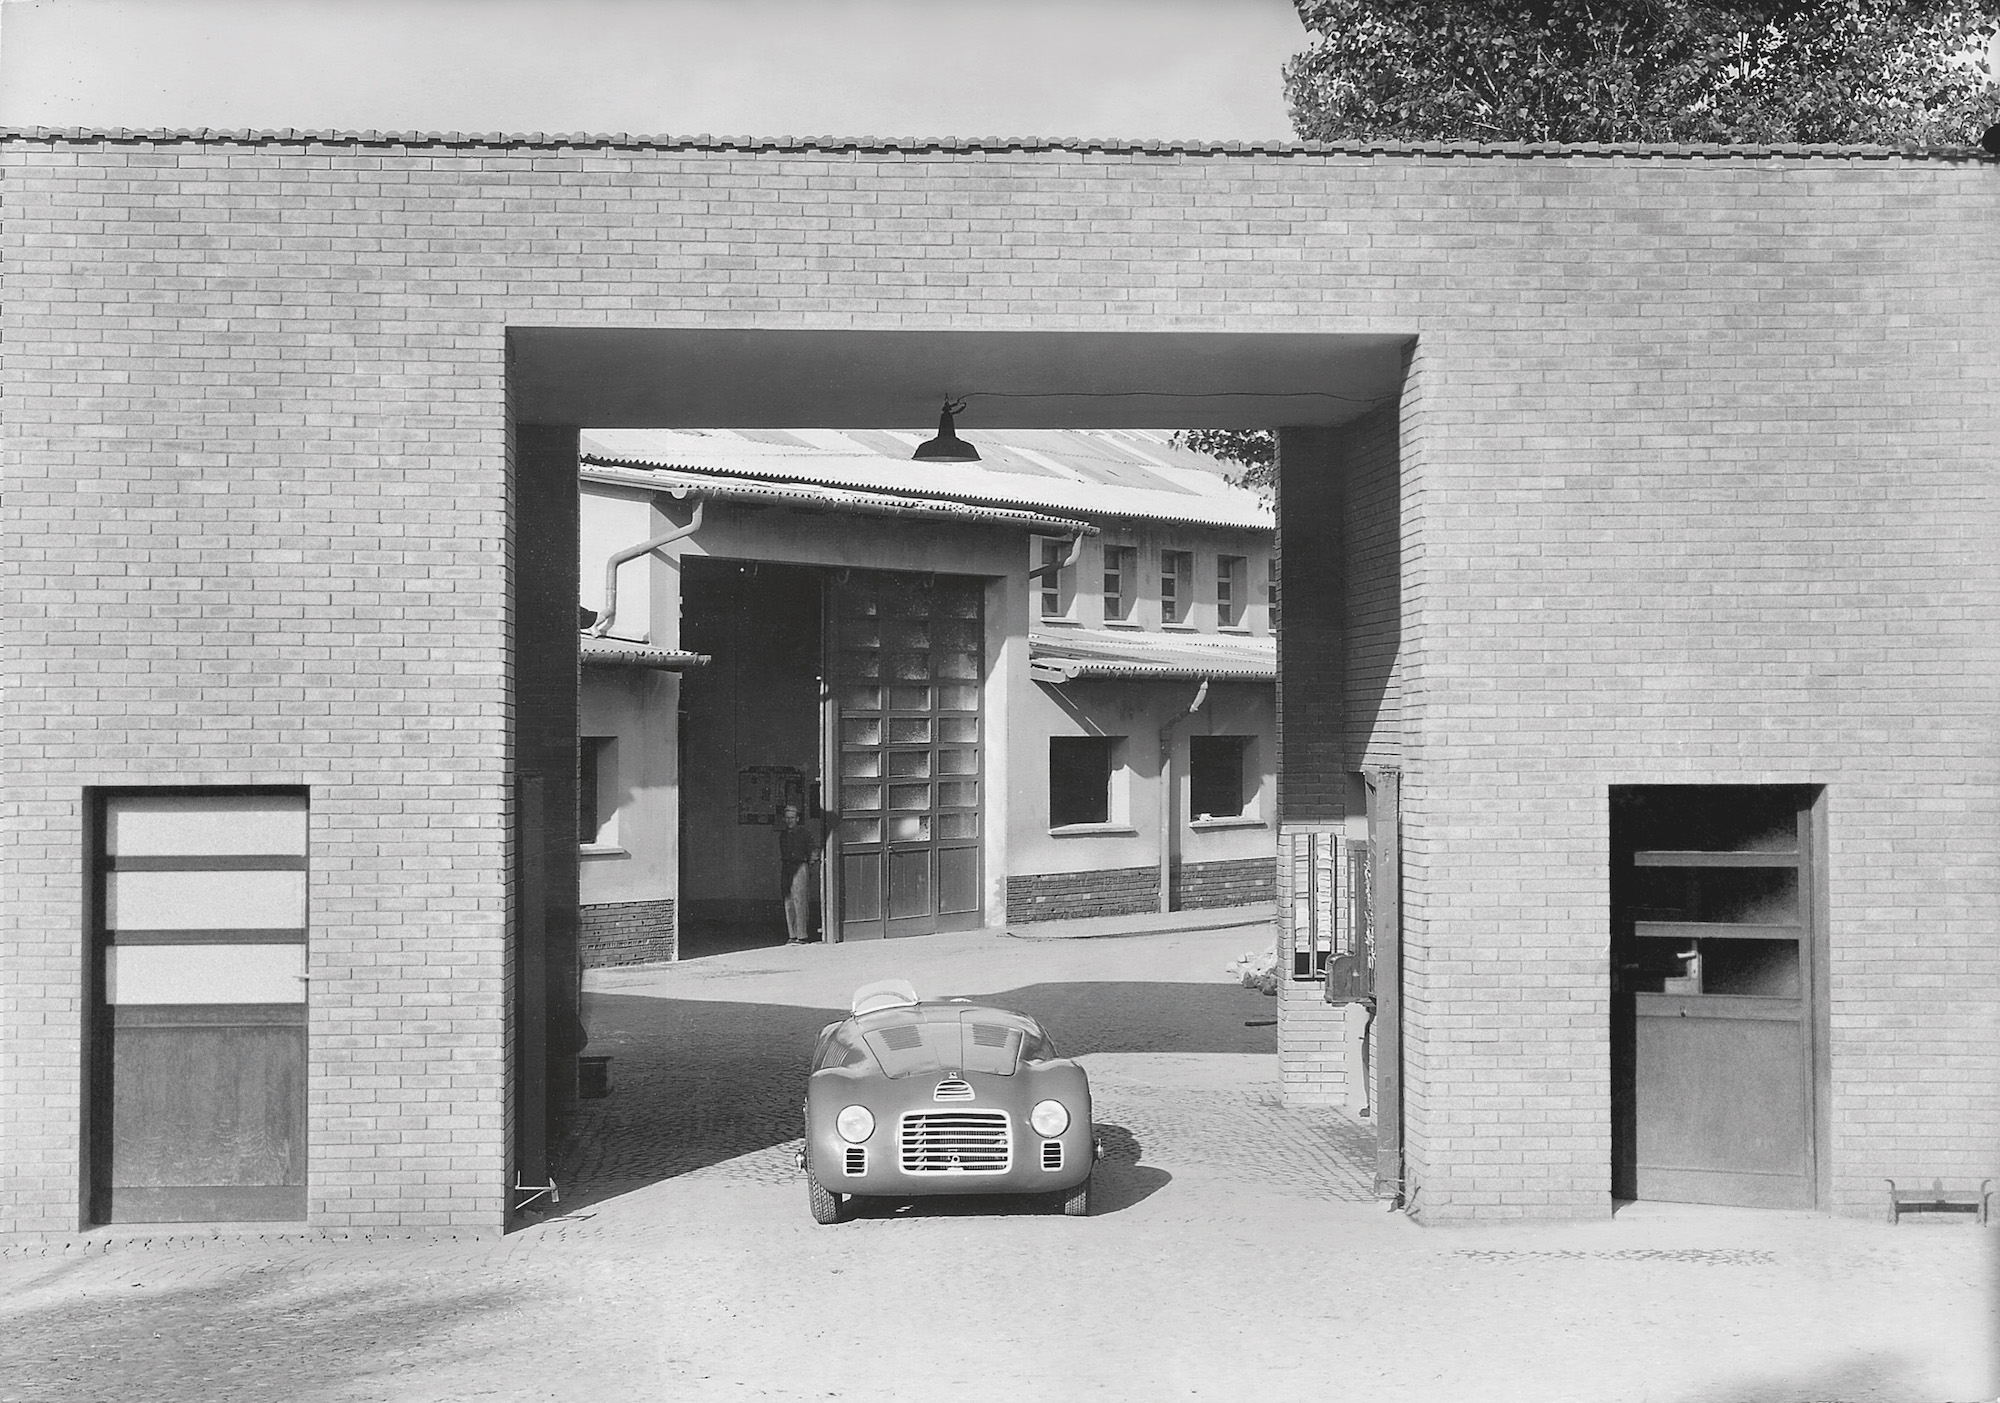 125 S is positioned at the entrance of the Ferrari factory, 1947 © Museo Ferrari